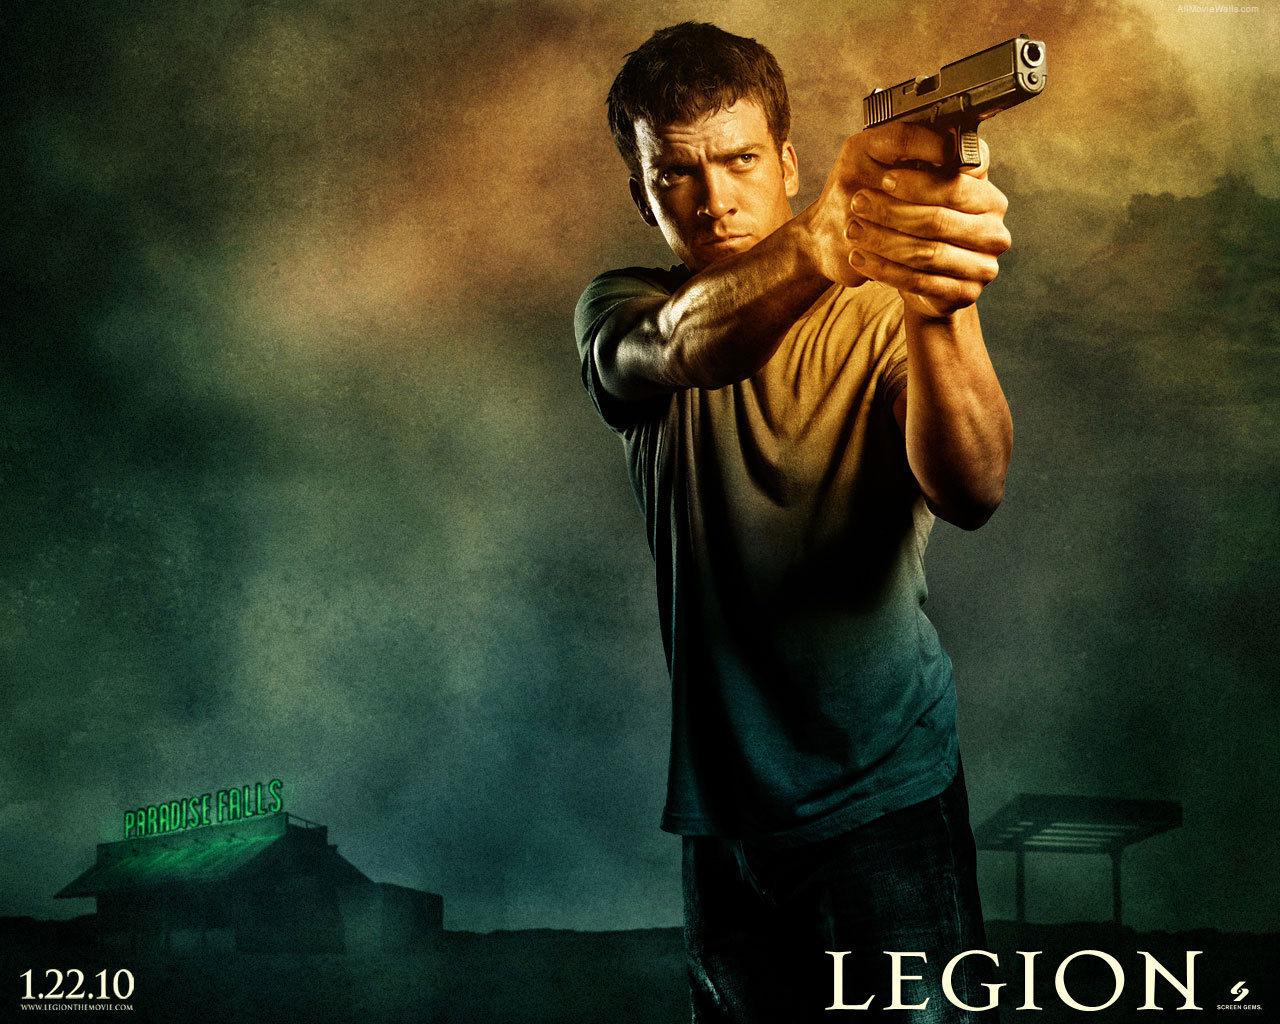 2010 legion movie wallpapers - photo #3